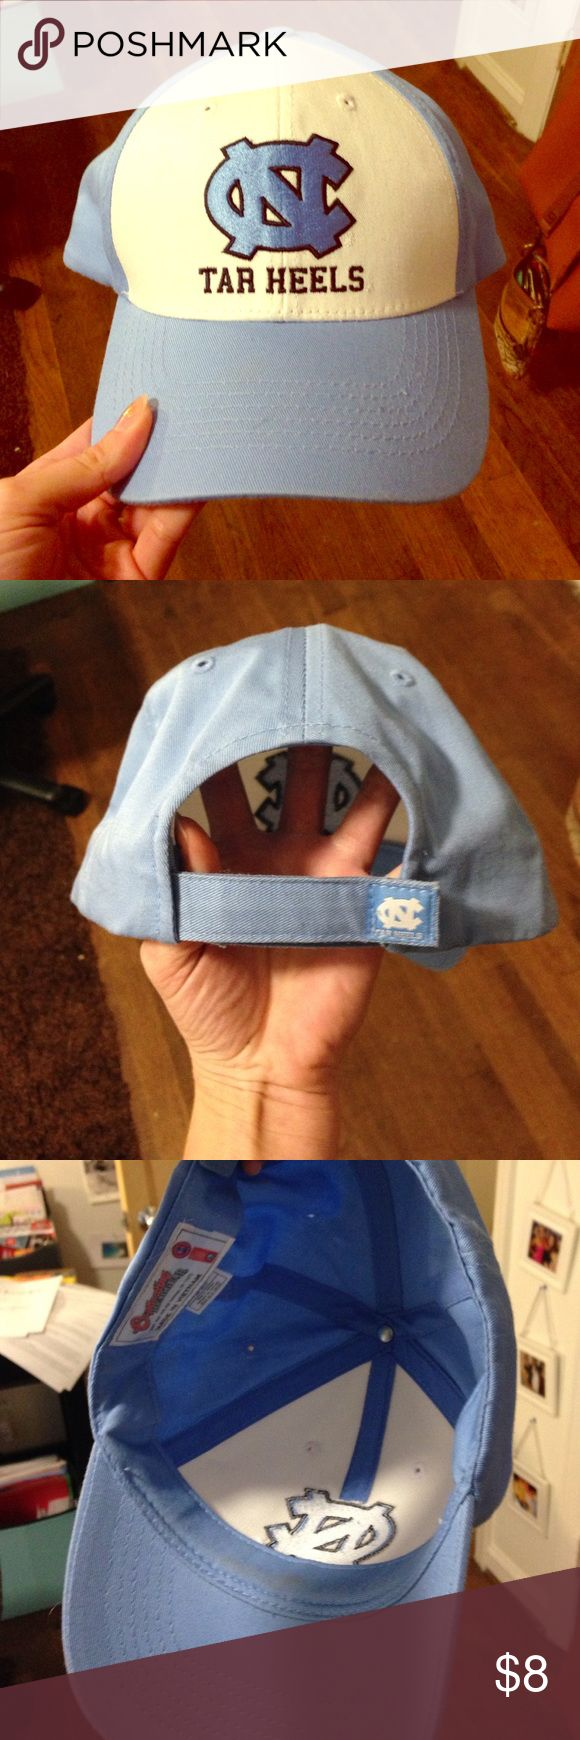 UNC Tar Heel cap Carolina blue and white with UNC logo. Adjustable strap. Other